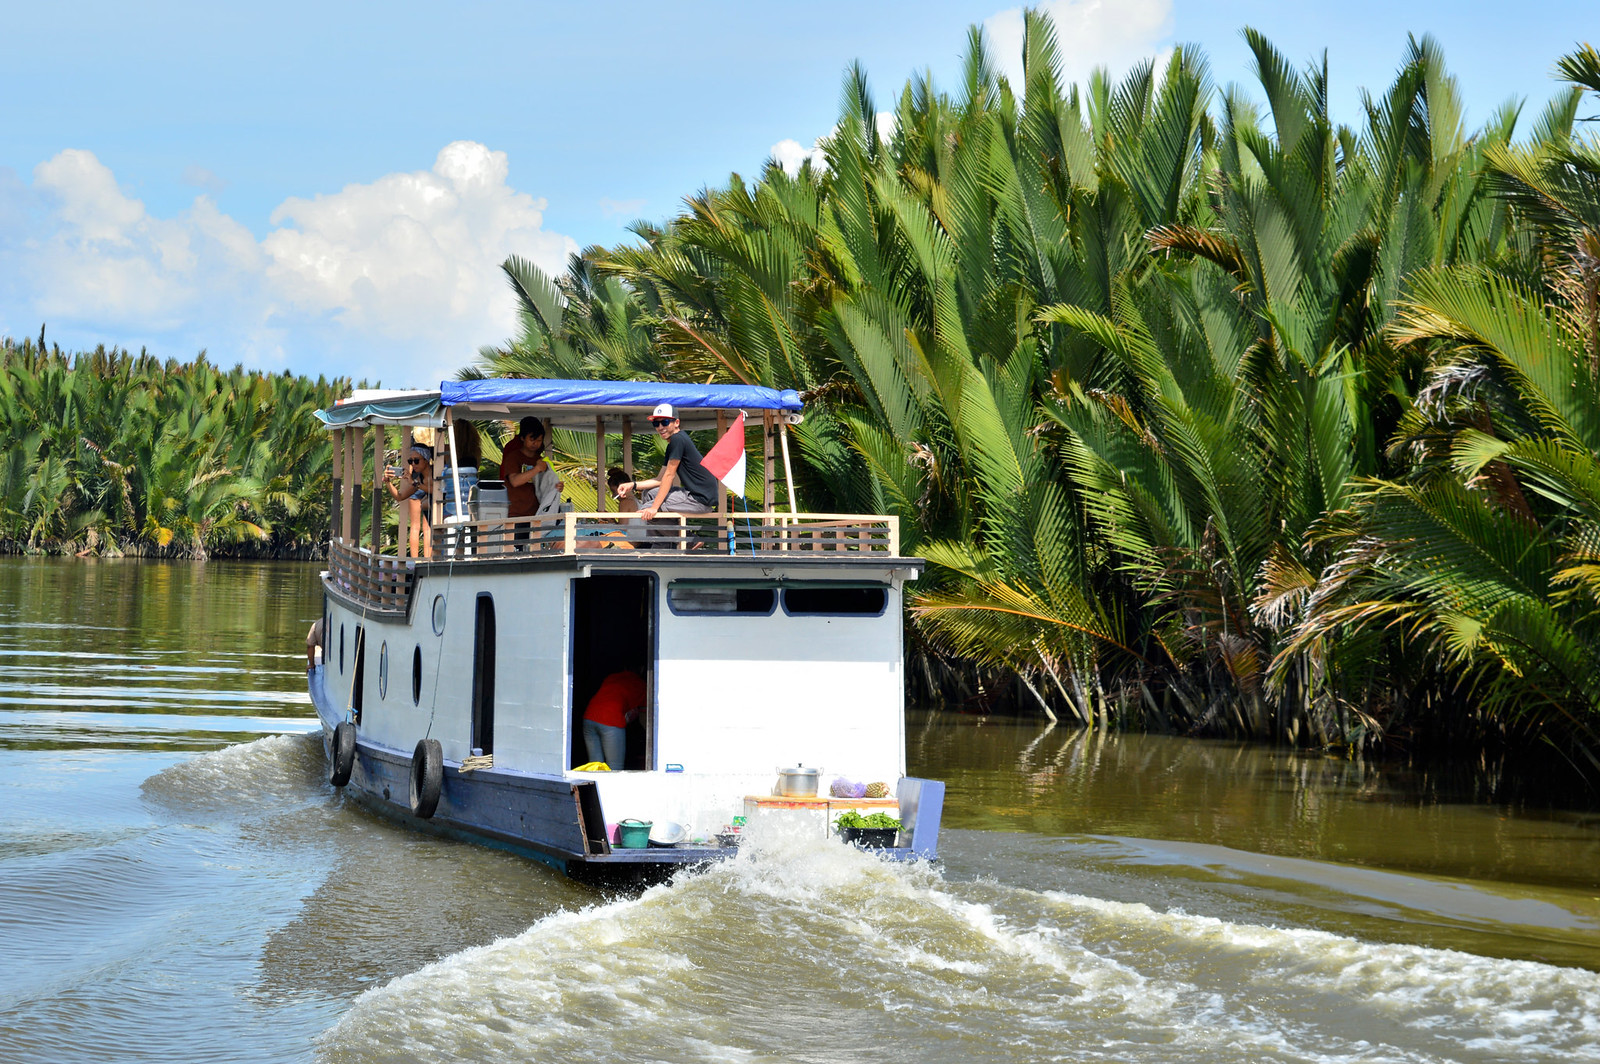 Traditional Klotok boat cruising the Sekonyer River in Borneo.